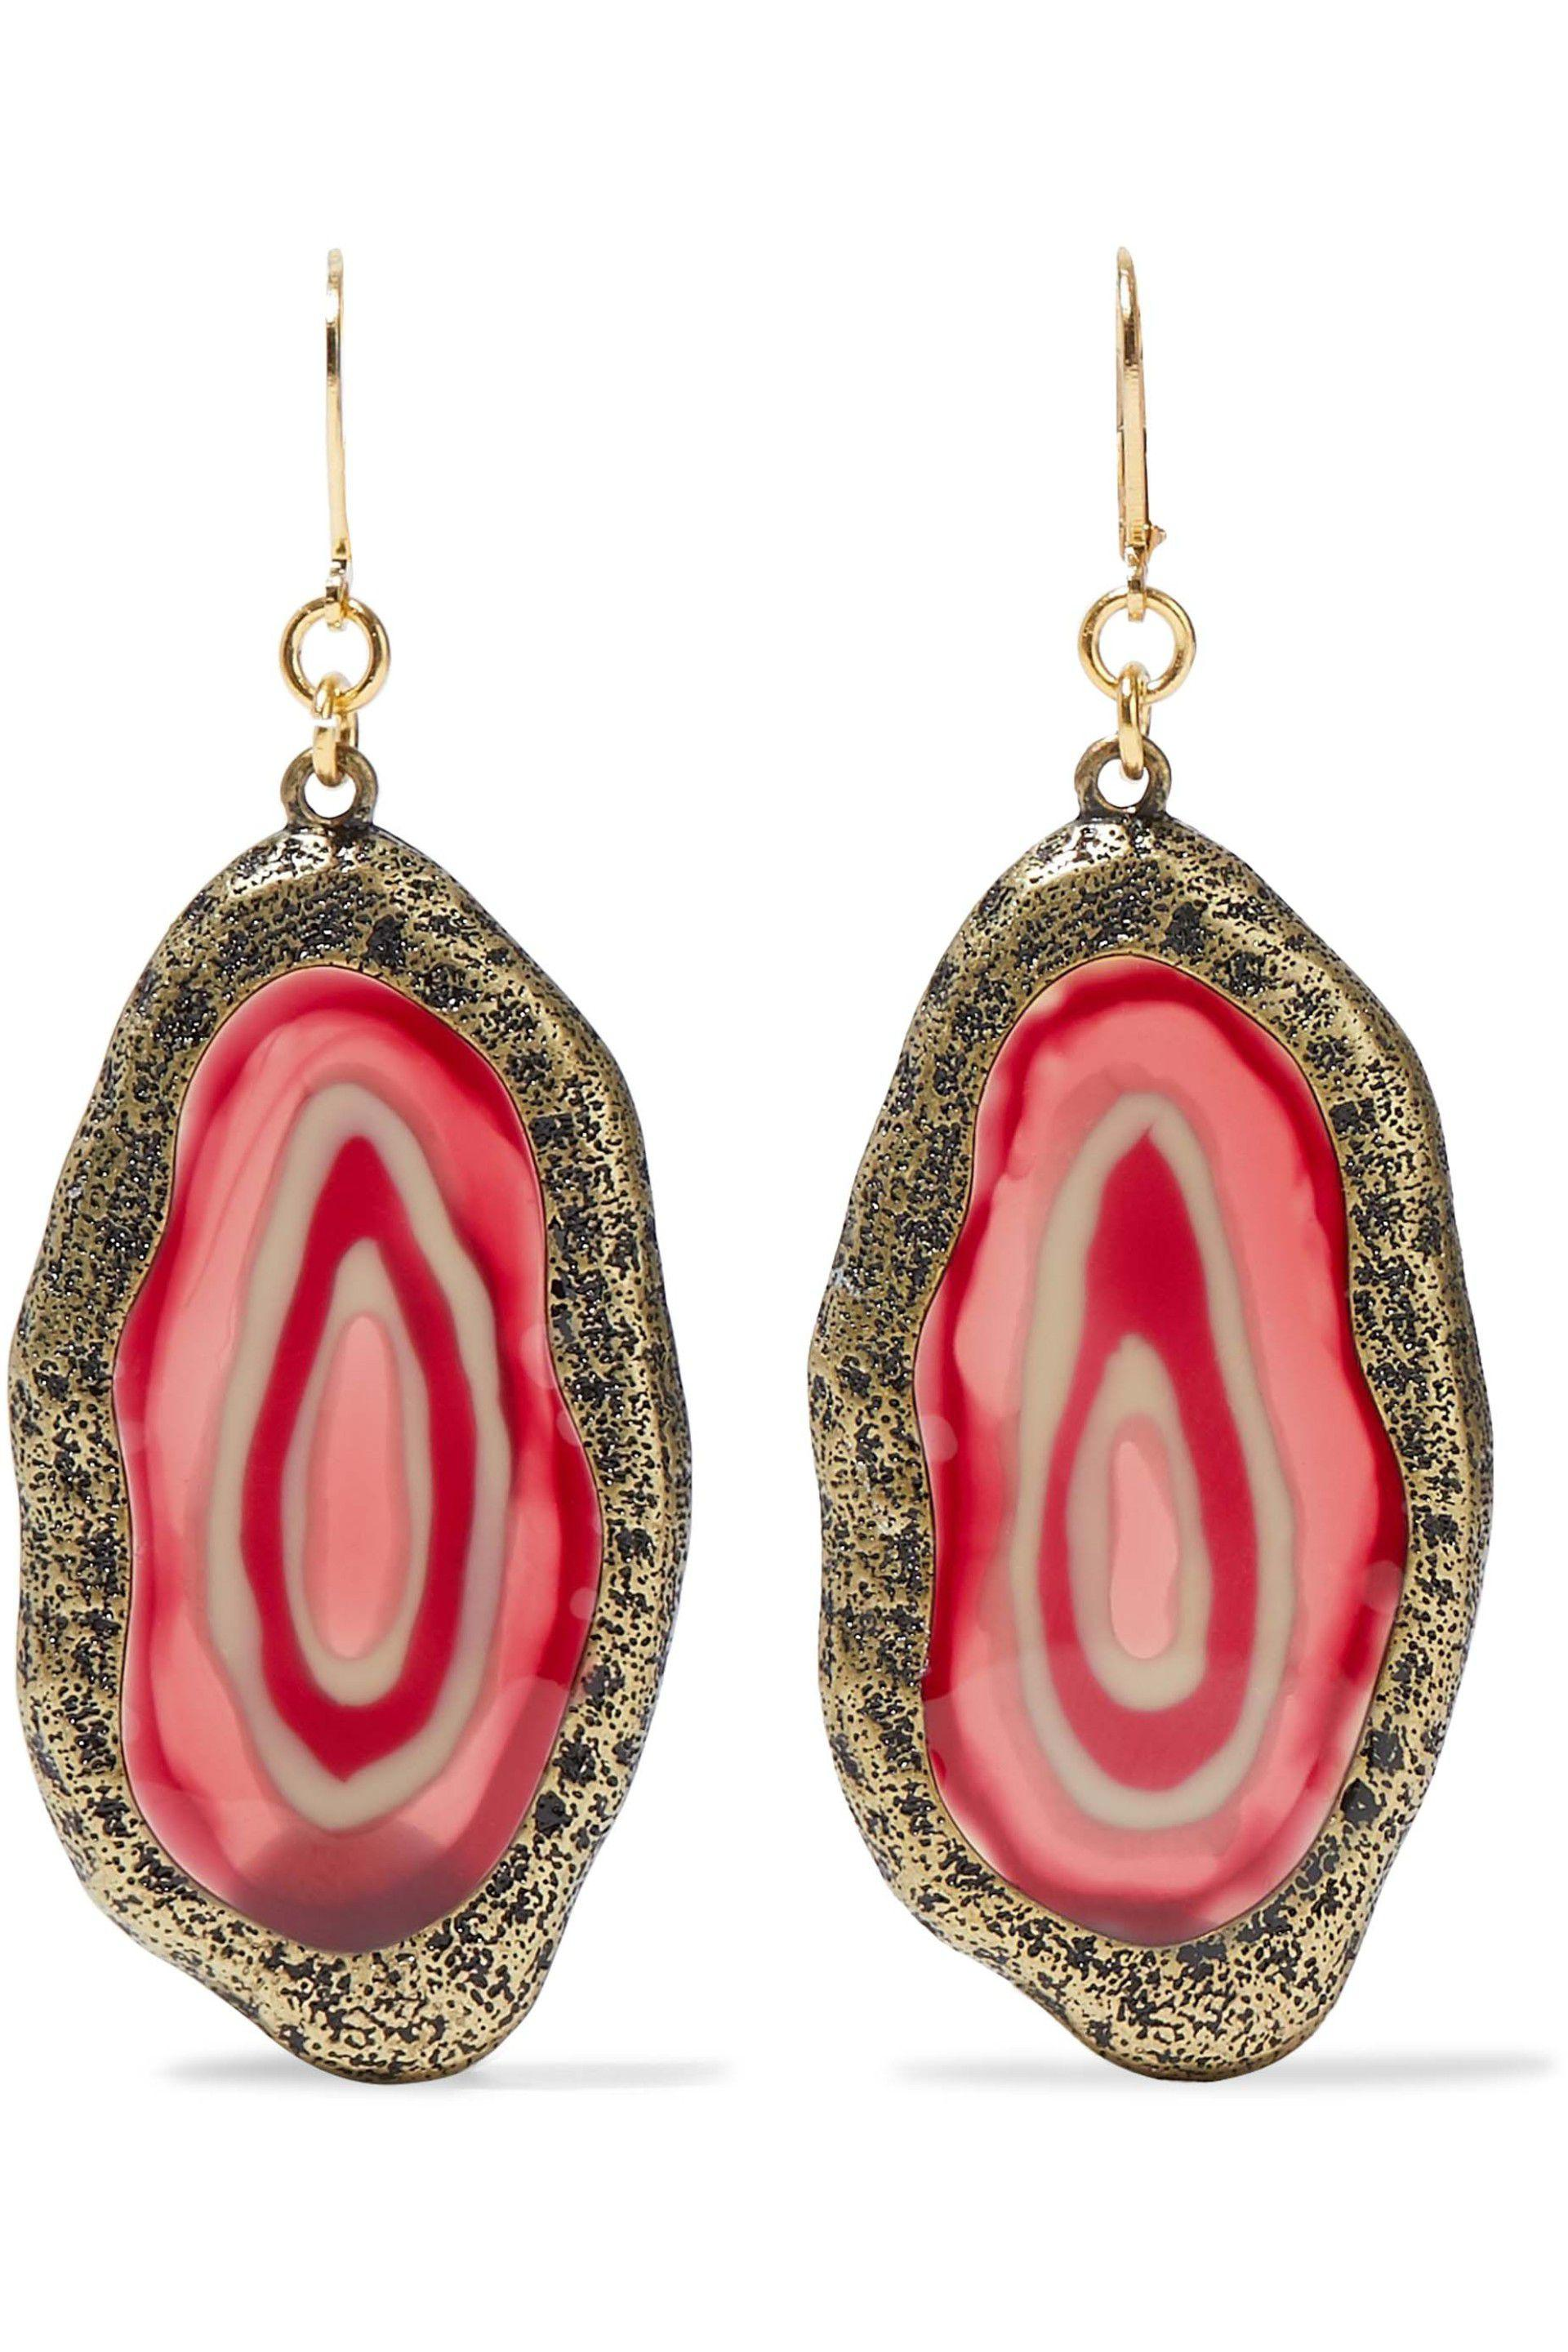 sienna products image earrings elizabeth resin